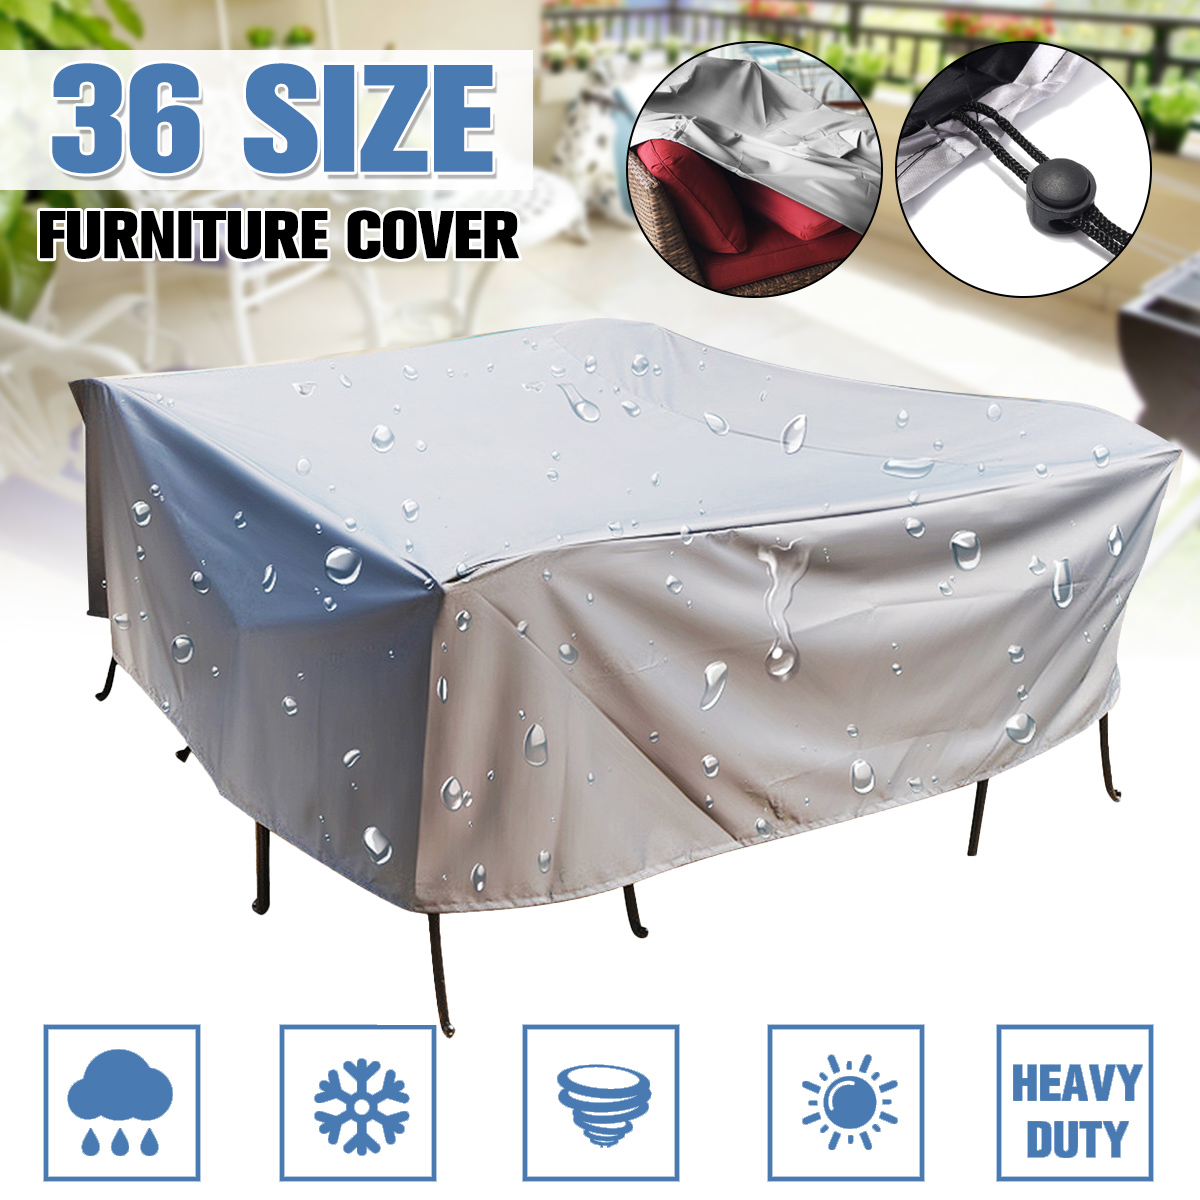 36Size Outdoor Cover Waterproof Furniture cover Sofa Chair Table Cover Garden Patio Beach Protector Rain Snow Dust Covers